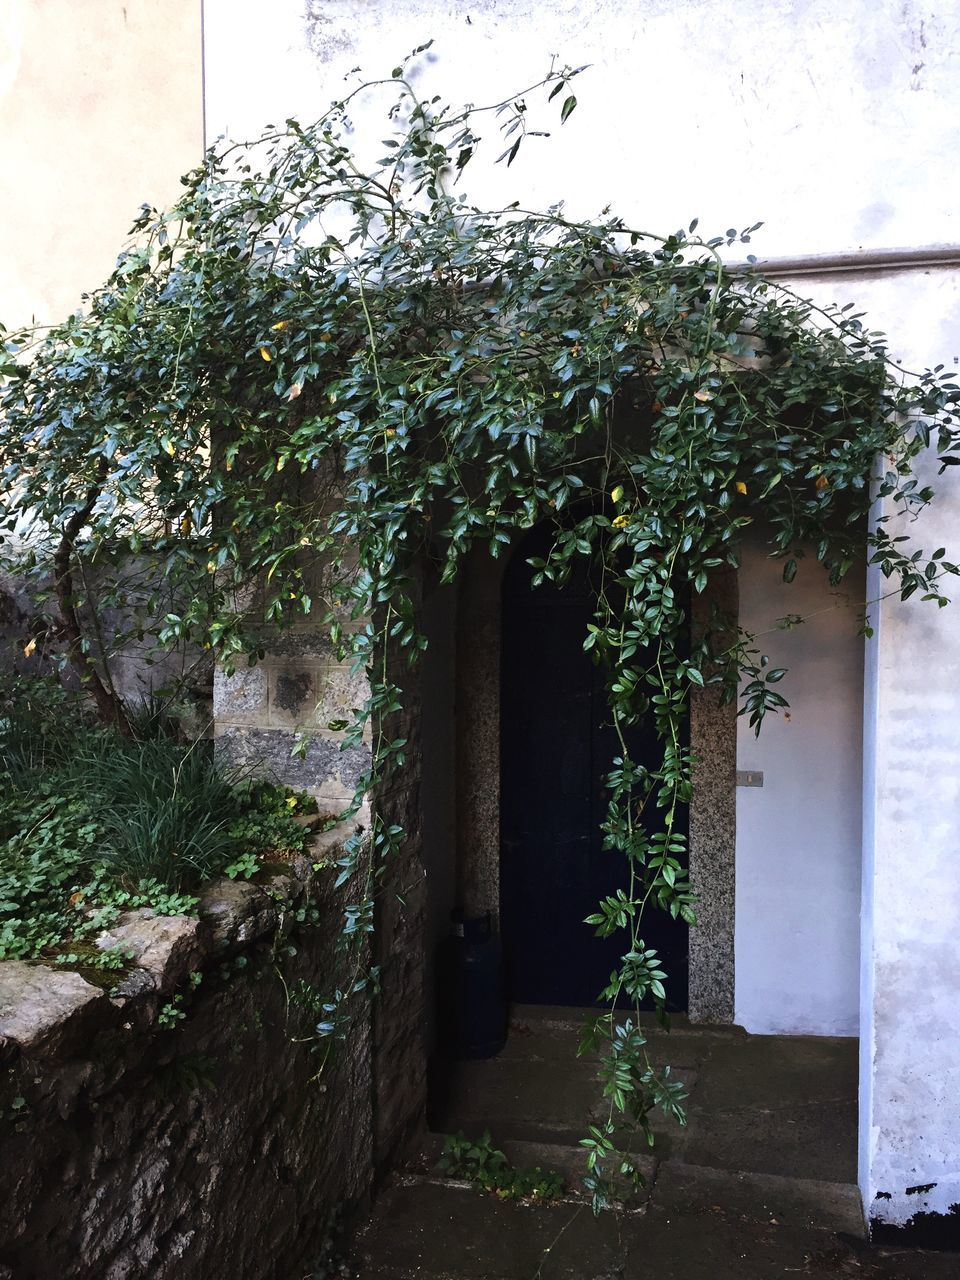 architecture, door, building exterior, built structure, house, entrance, no people, day, plant, ivy, outdoors, entry, growth, tree, nature